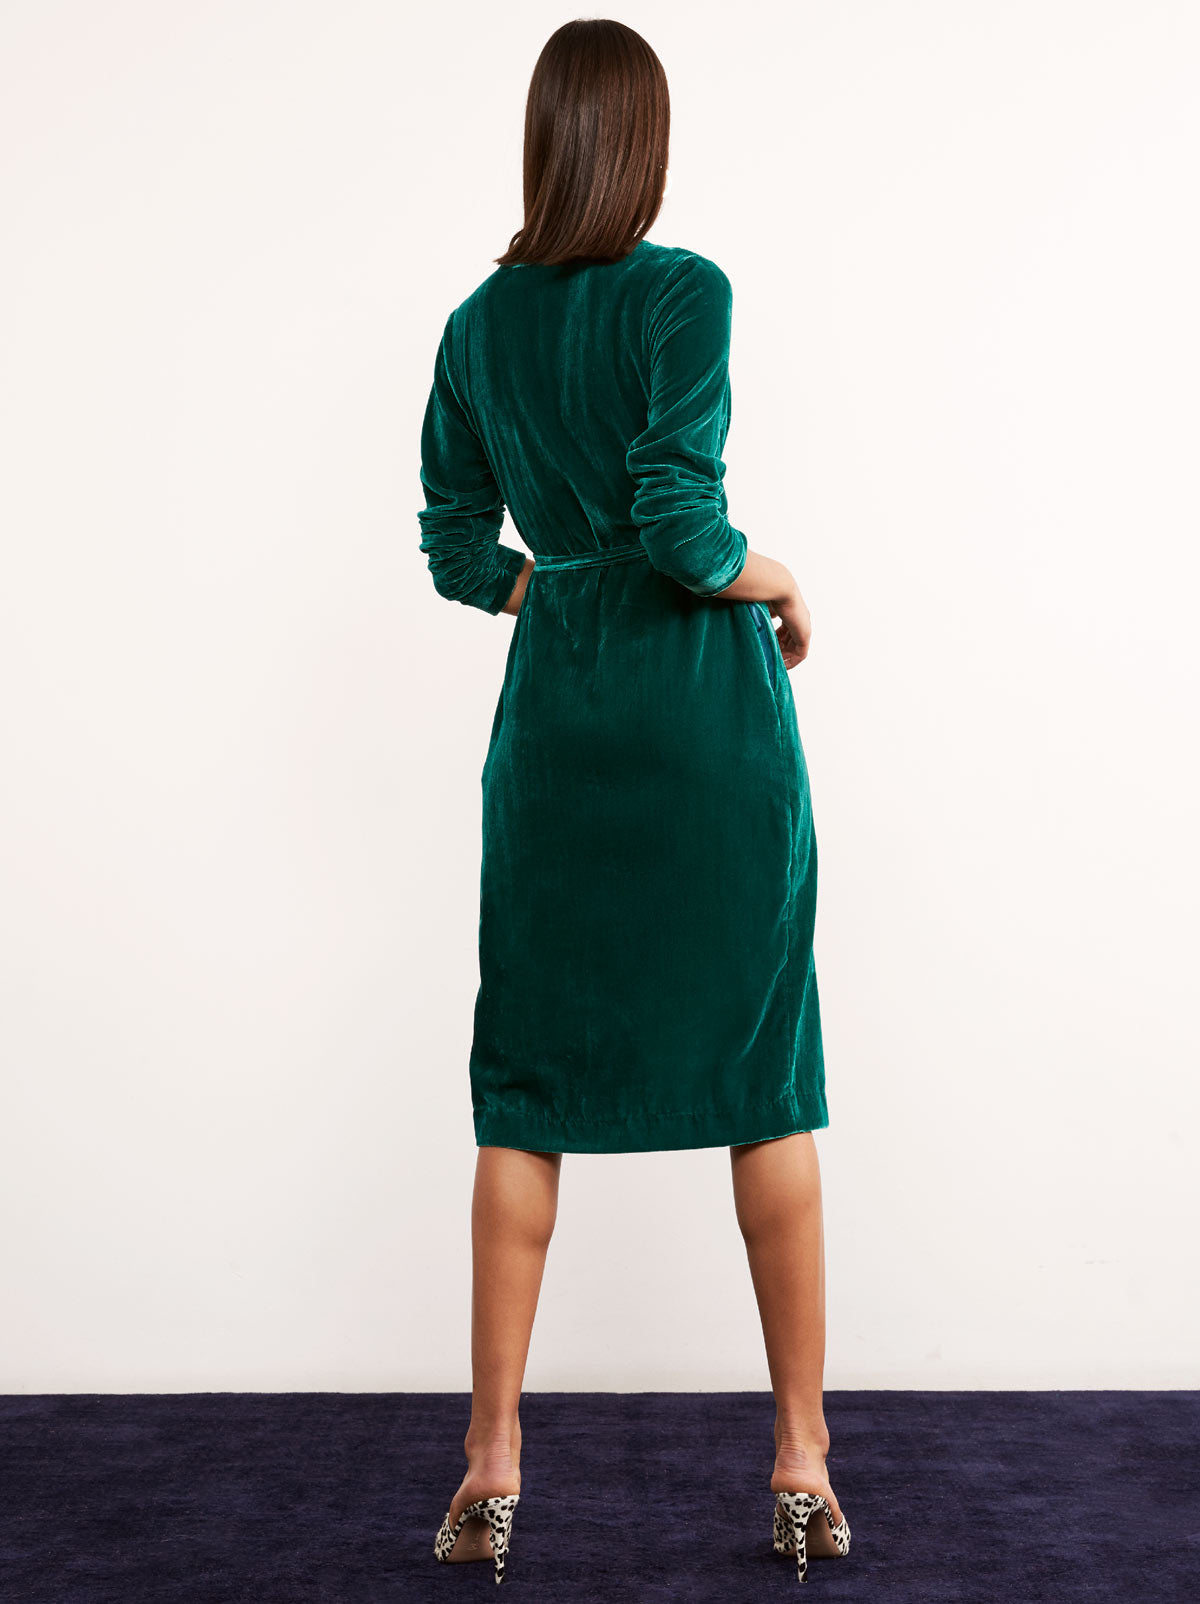 Maya Green Velvet Wrap Midi Dress by KITRI Studio